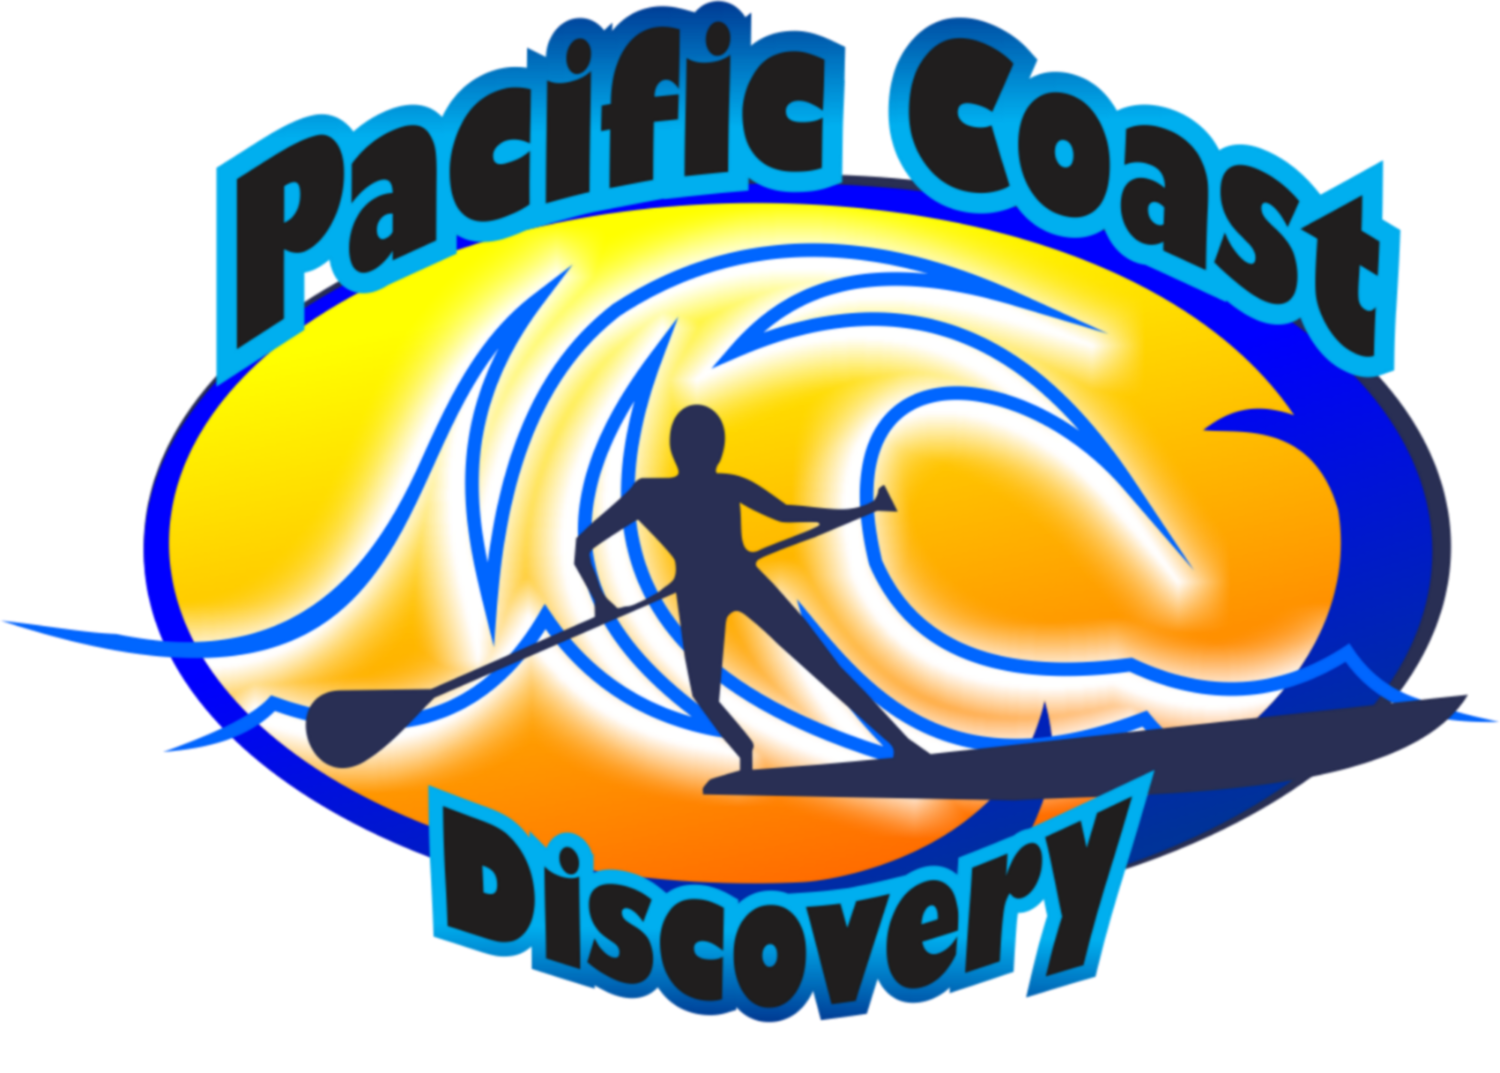 Pacific coast clipart svg transparent library Pacific Coast Discovery svg transparent library